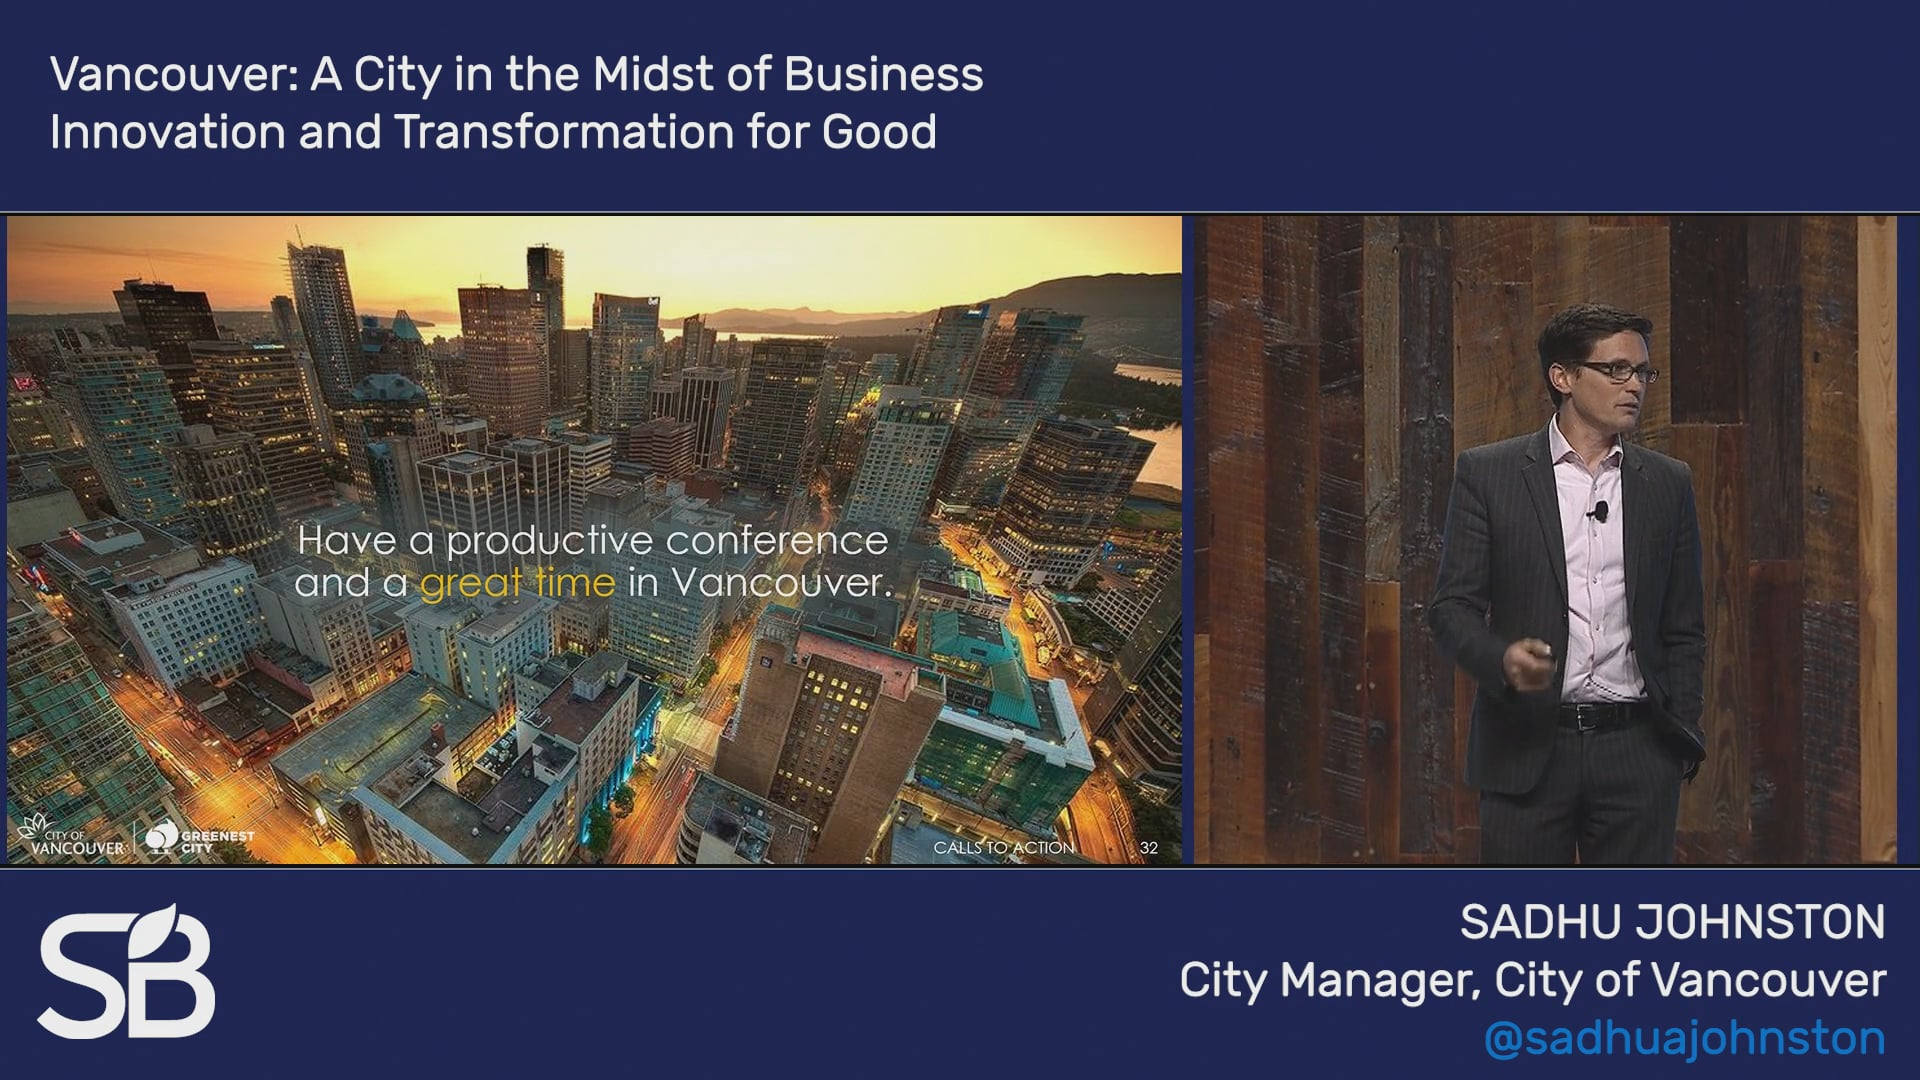 SB'18 Vancouver Keynote / Vancouver: A City in the Midst of Business Innovation and Transformation for Good